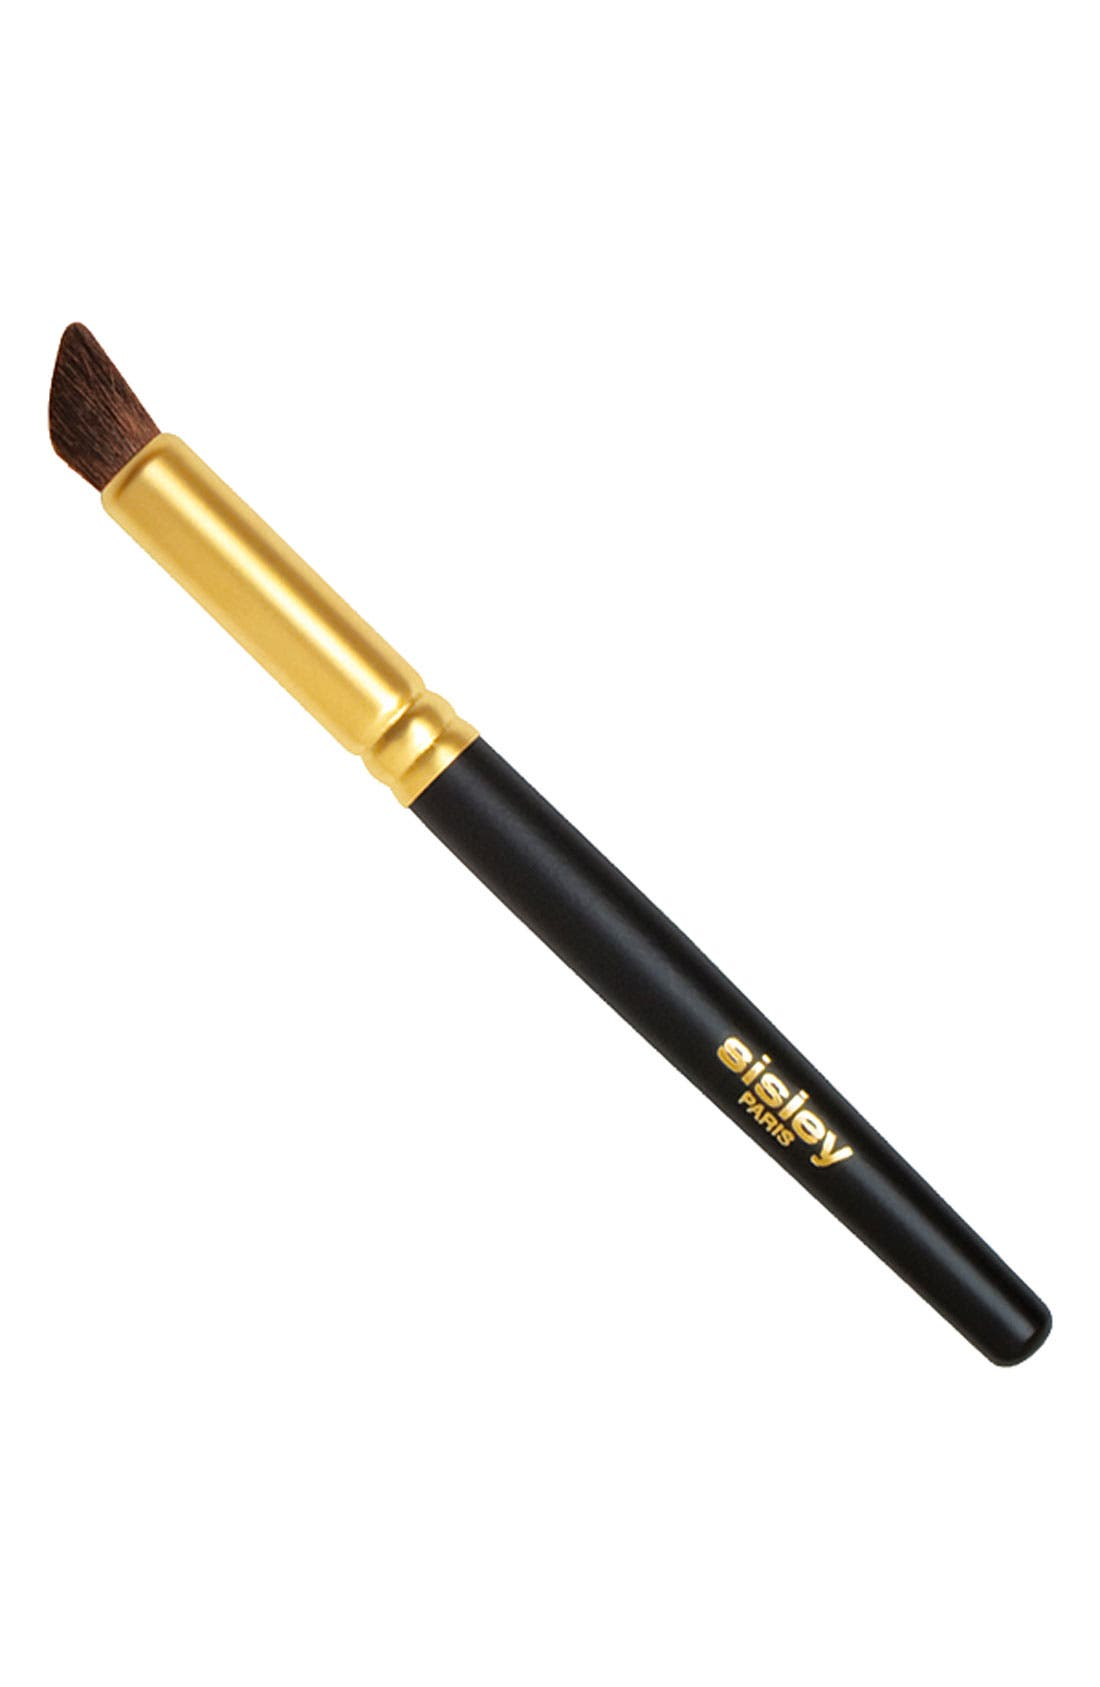 What it is: Eyelid Shading Brush, or Pinceau Estompeur, is a double-sided brush ideal for the application and blending of eyeshadows. Who it\\\'s for: Anyone who wants to easily apply eyeshadow. What it does: Its double-sided beveled shape and high-quality natural bristles have been specifically designed for shading and blending eyeshadow. How to use: Use the flat side of the brush to apply eyeshadow to the surface of your eyelids. Then, with the